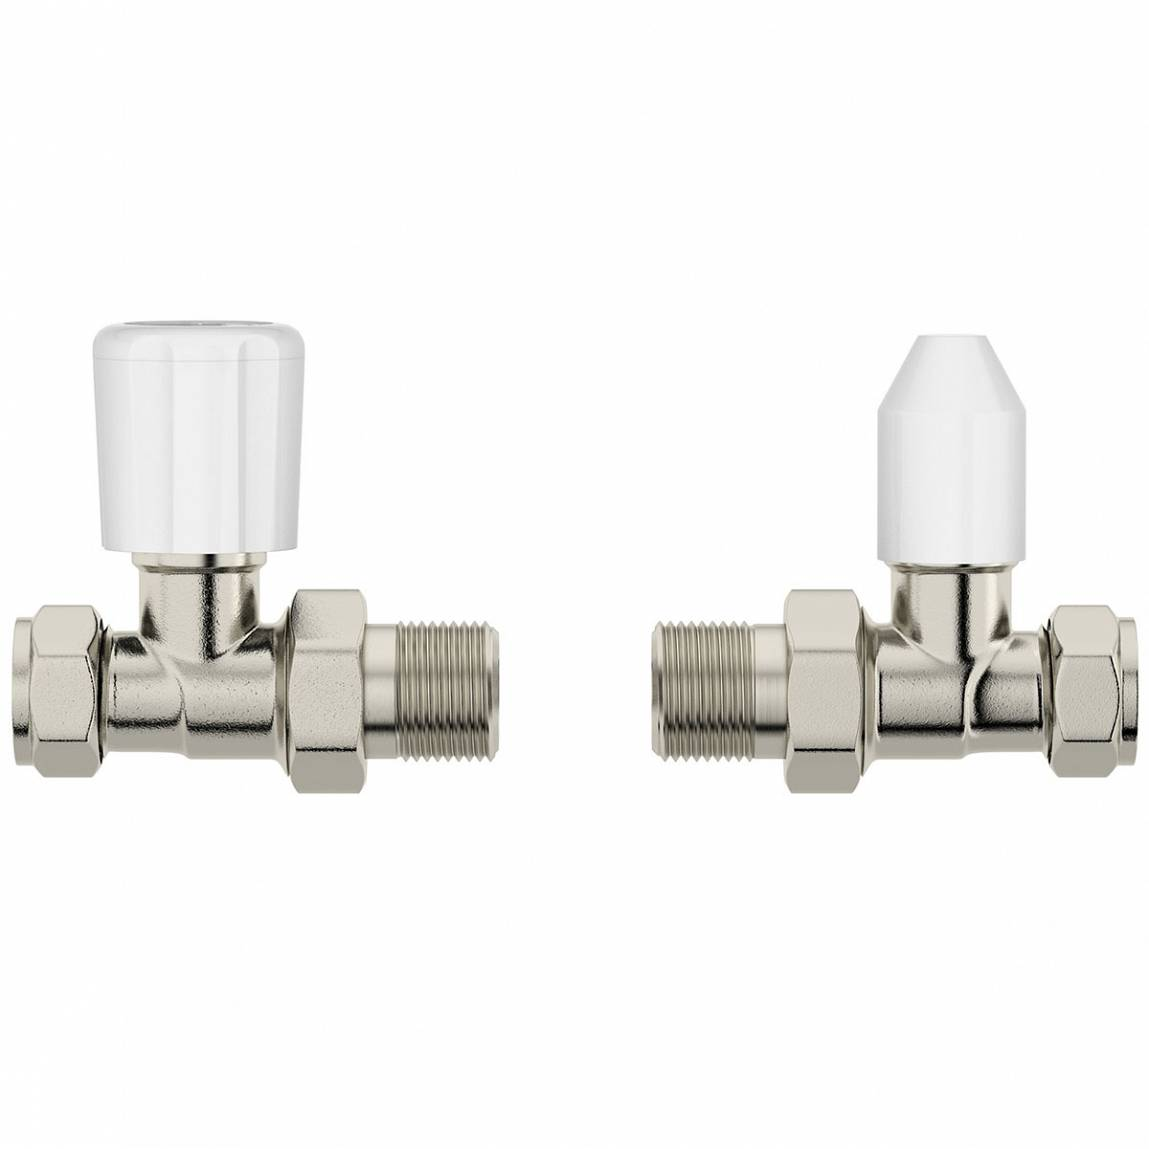 Image of Straight Radiator Valves